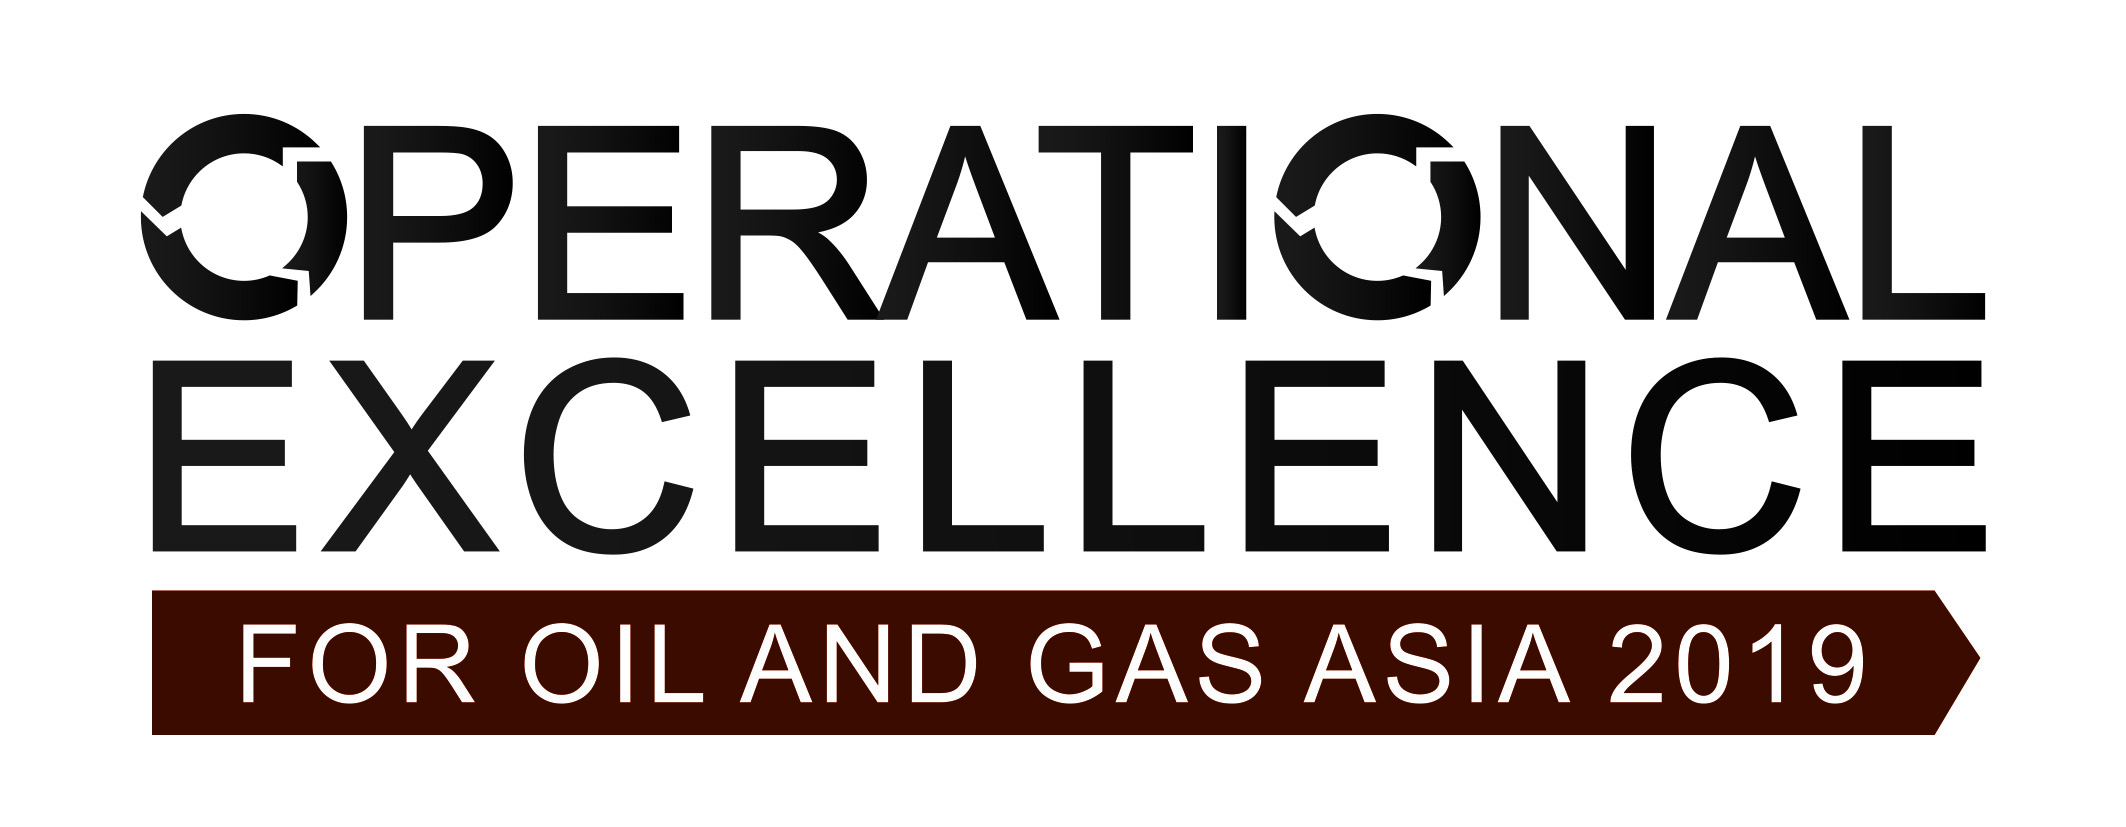 OPEX for Oil and Gas Asia 2019 logo